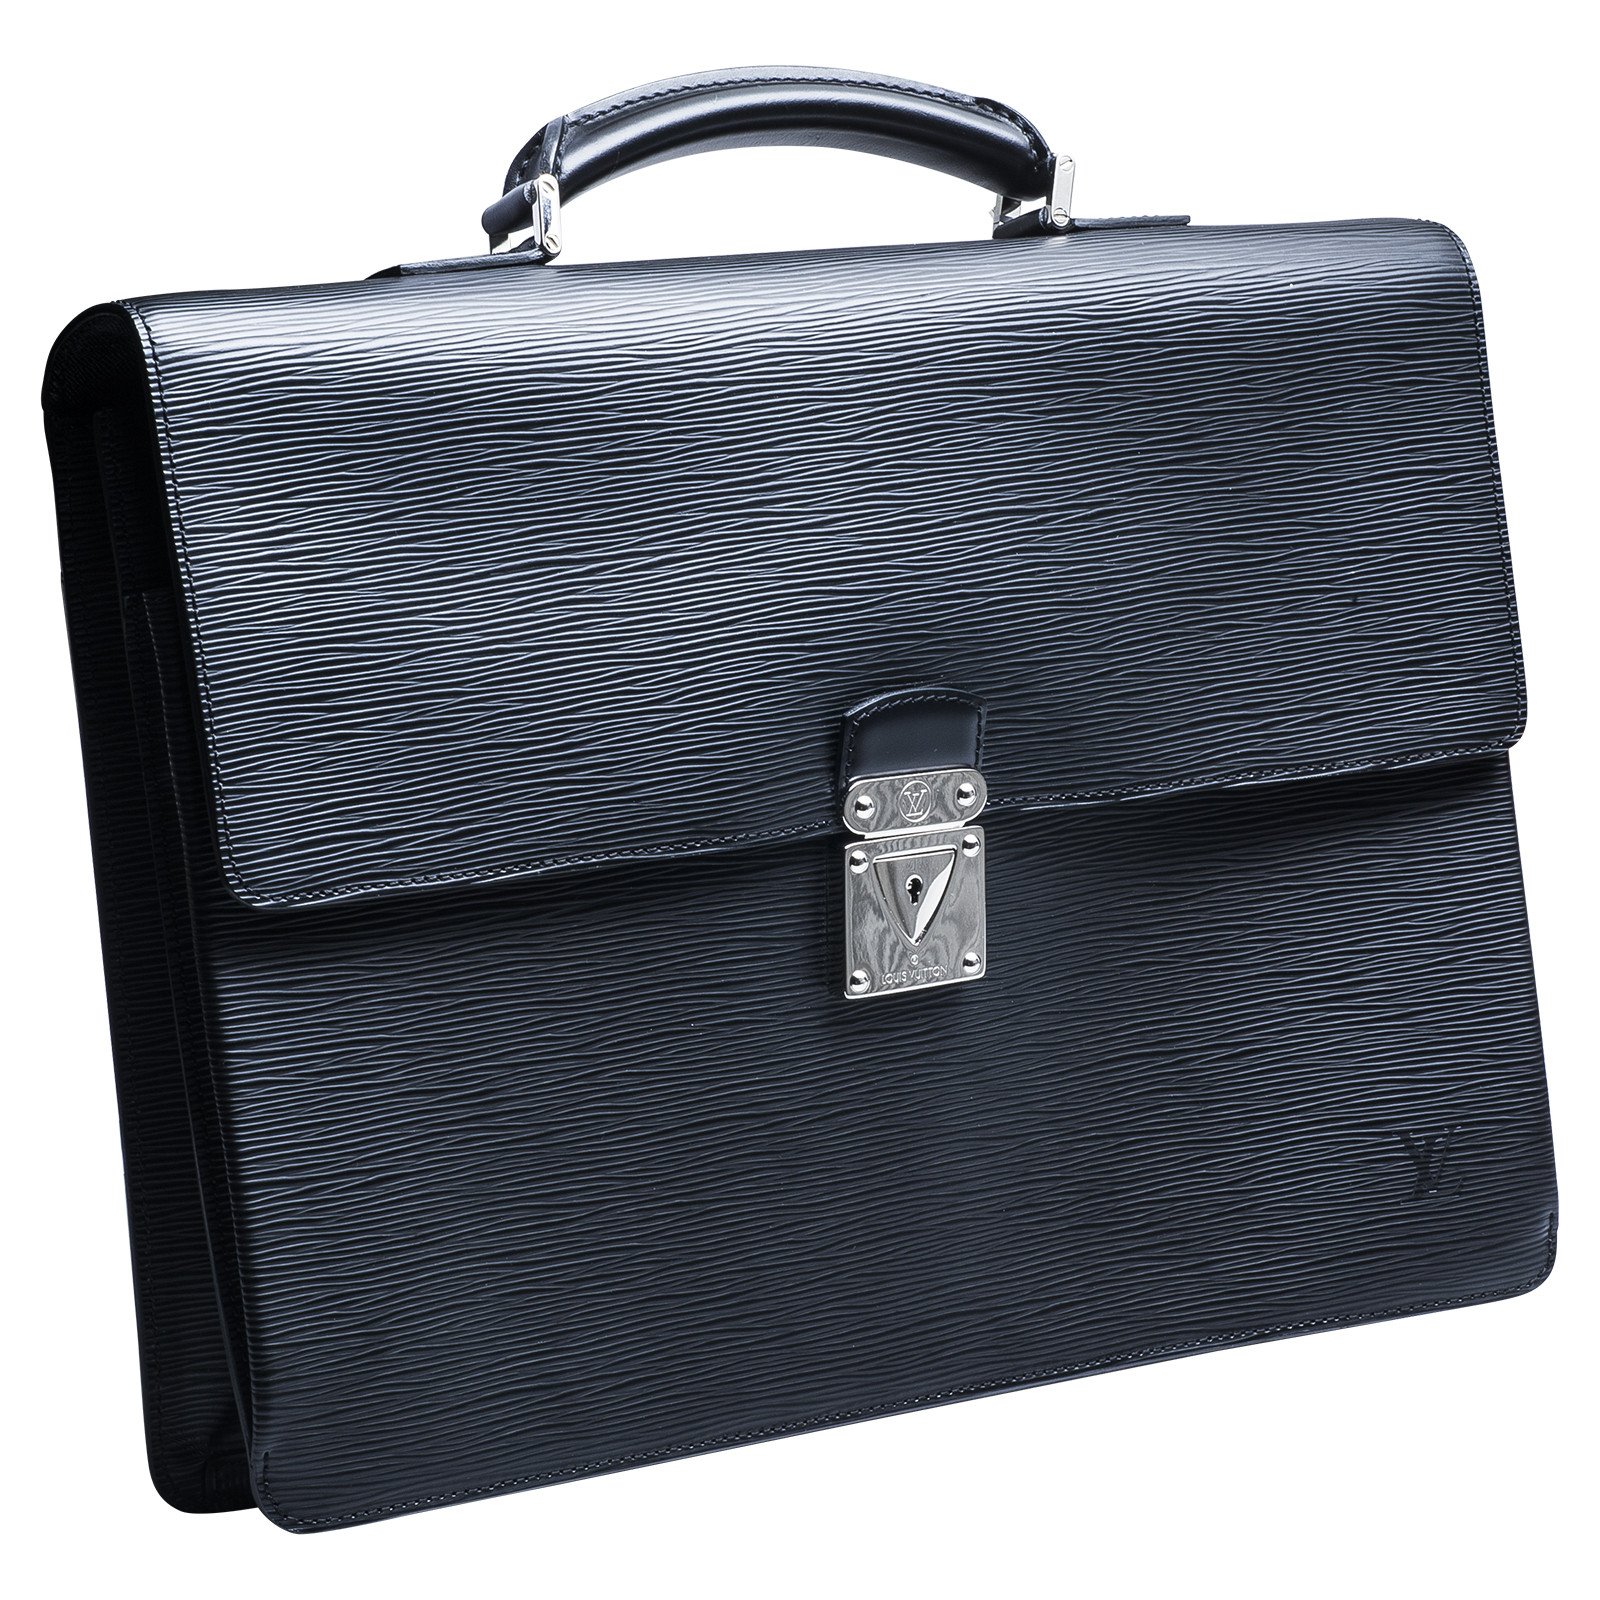 Vintage Louis Vuitton Black Noir Epi Robusto Briefcase